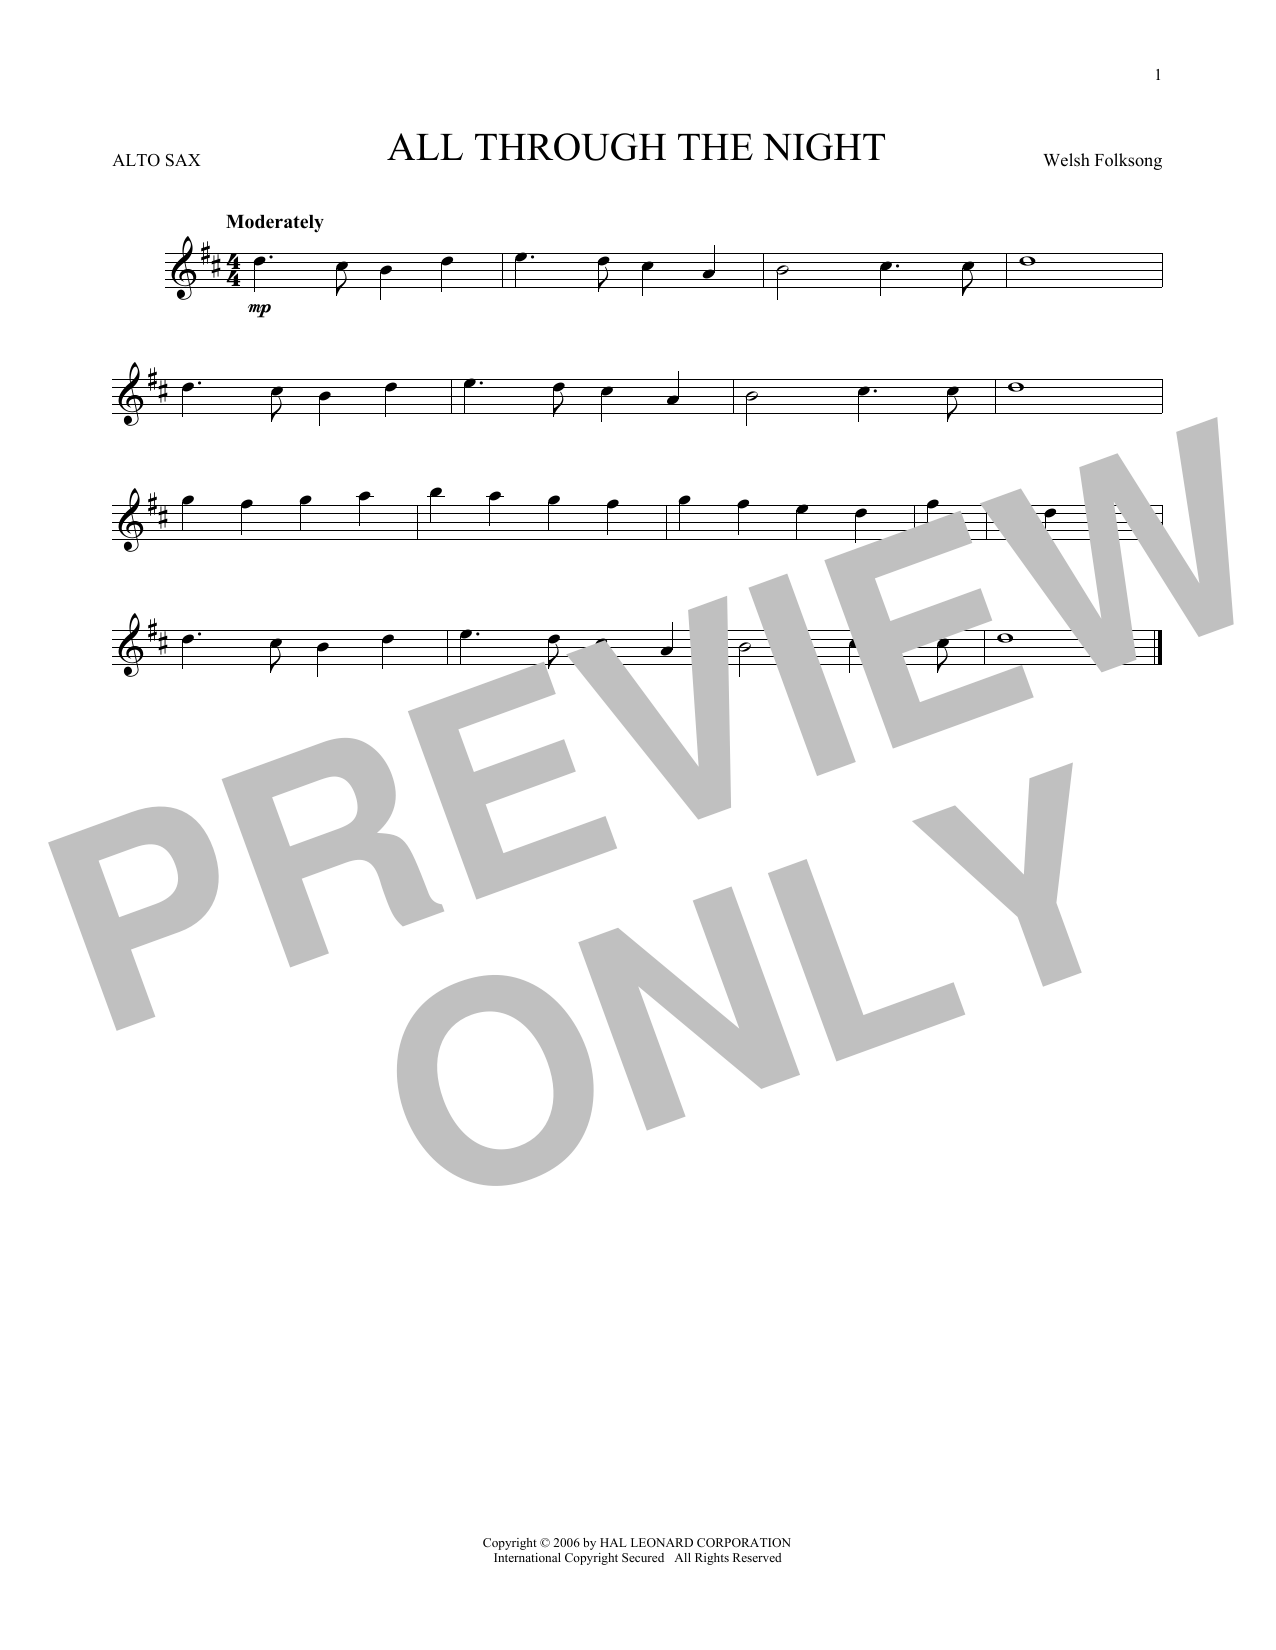 Partition saxophone All Through The Night de Welsh Folksong - Sax Alto